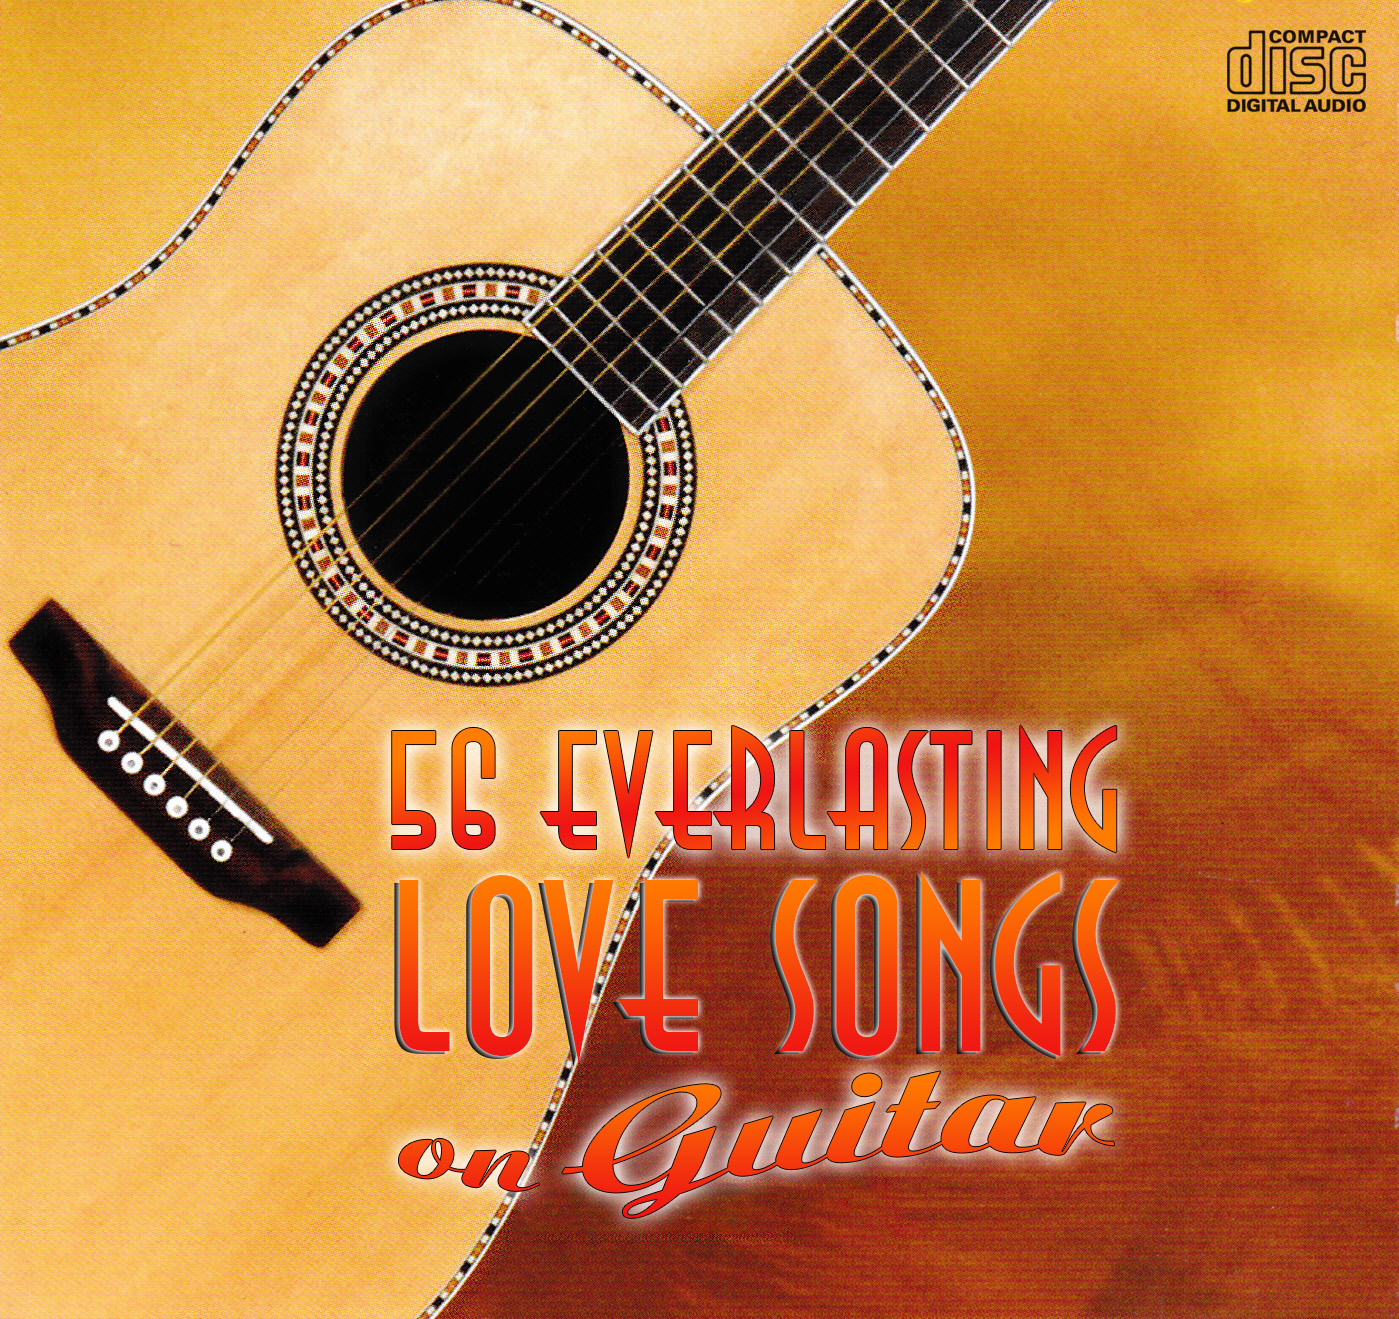 guitar of love song